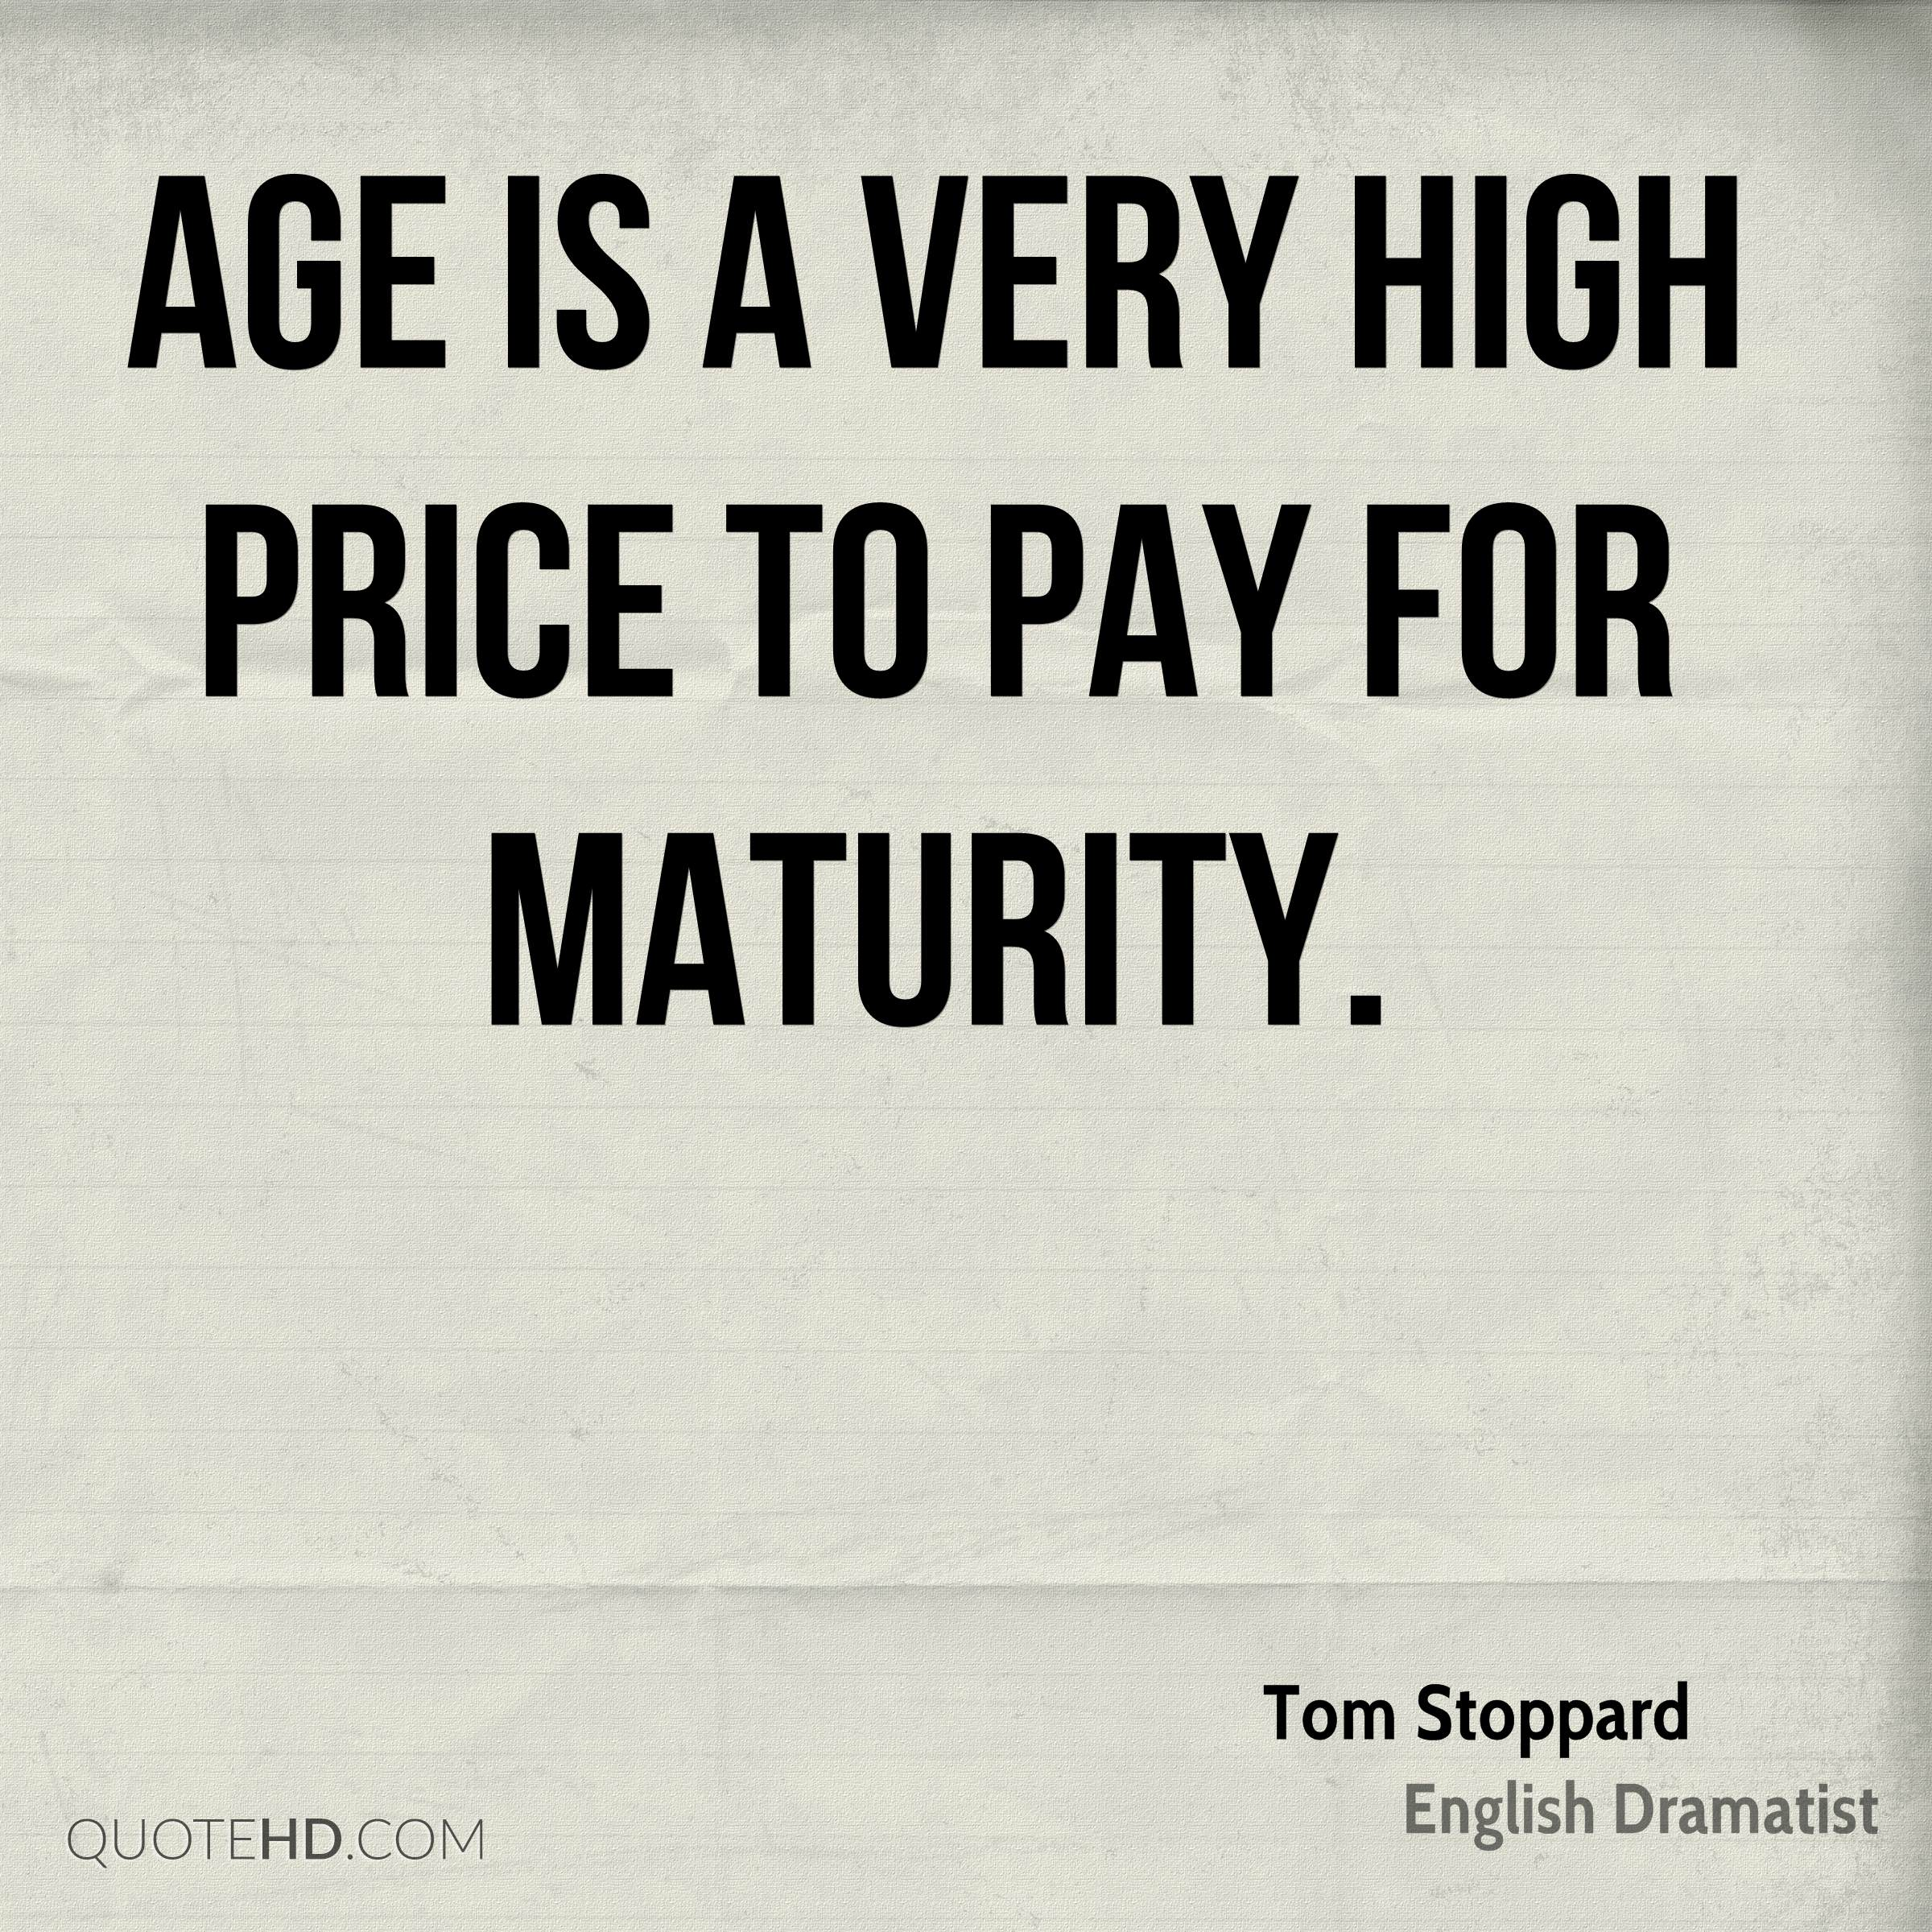 Maturity Quotes Tom Stoppard Age Quotes  Quotehd